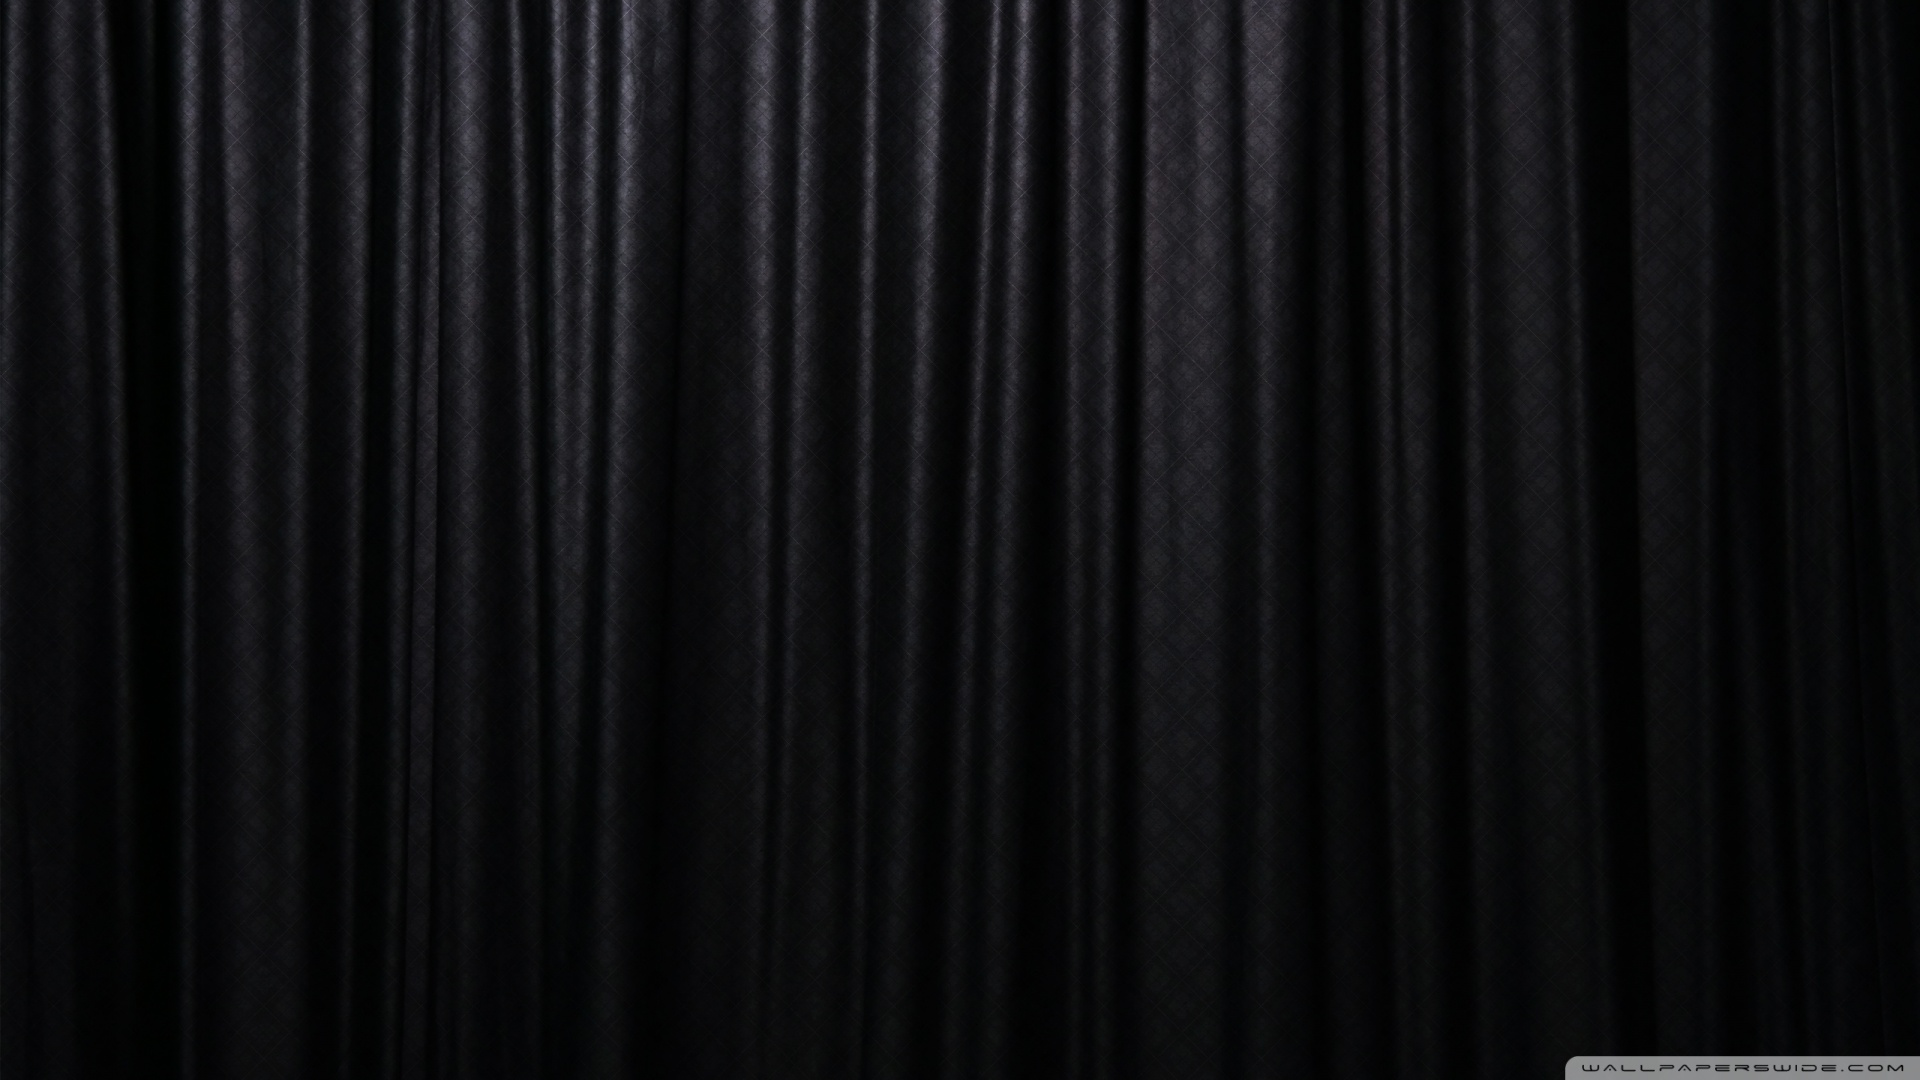 Red velvet curtains stage - Window Curtain Black Wallpaper 1920x1080 Window Curtain Black Html